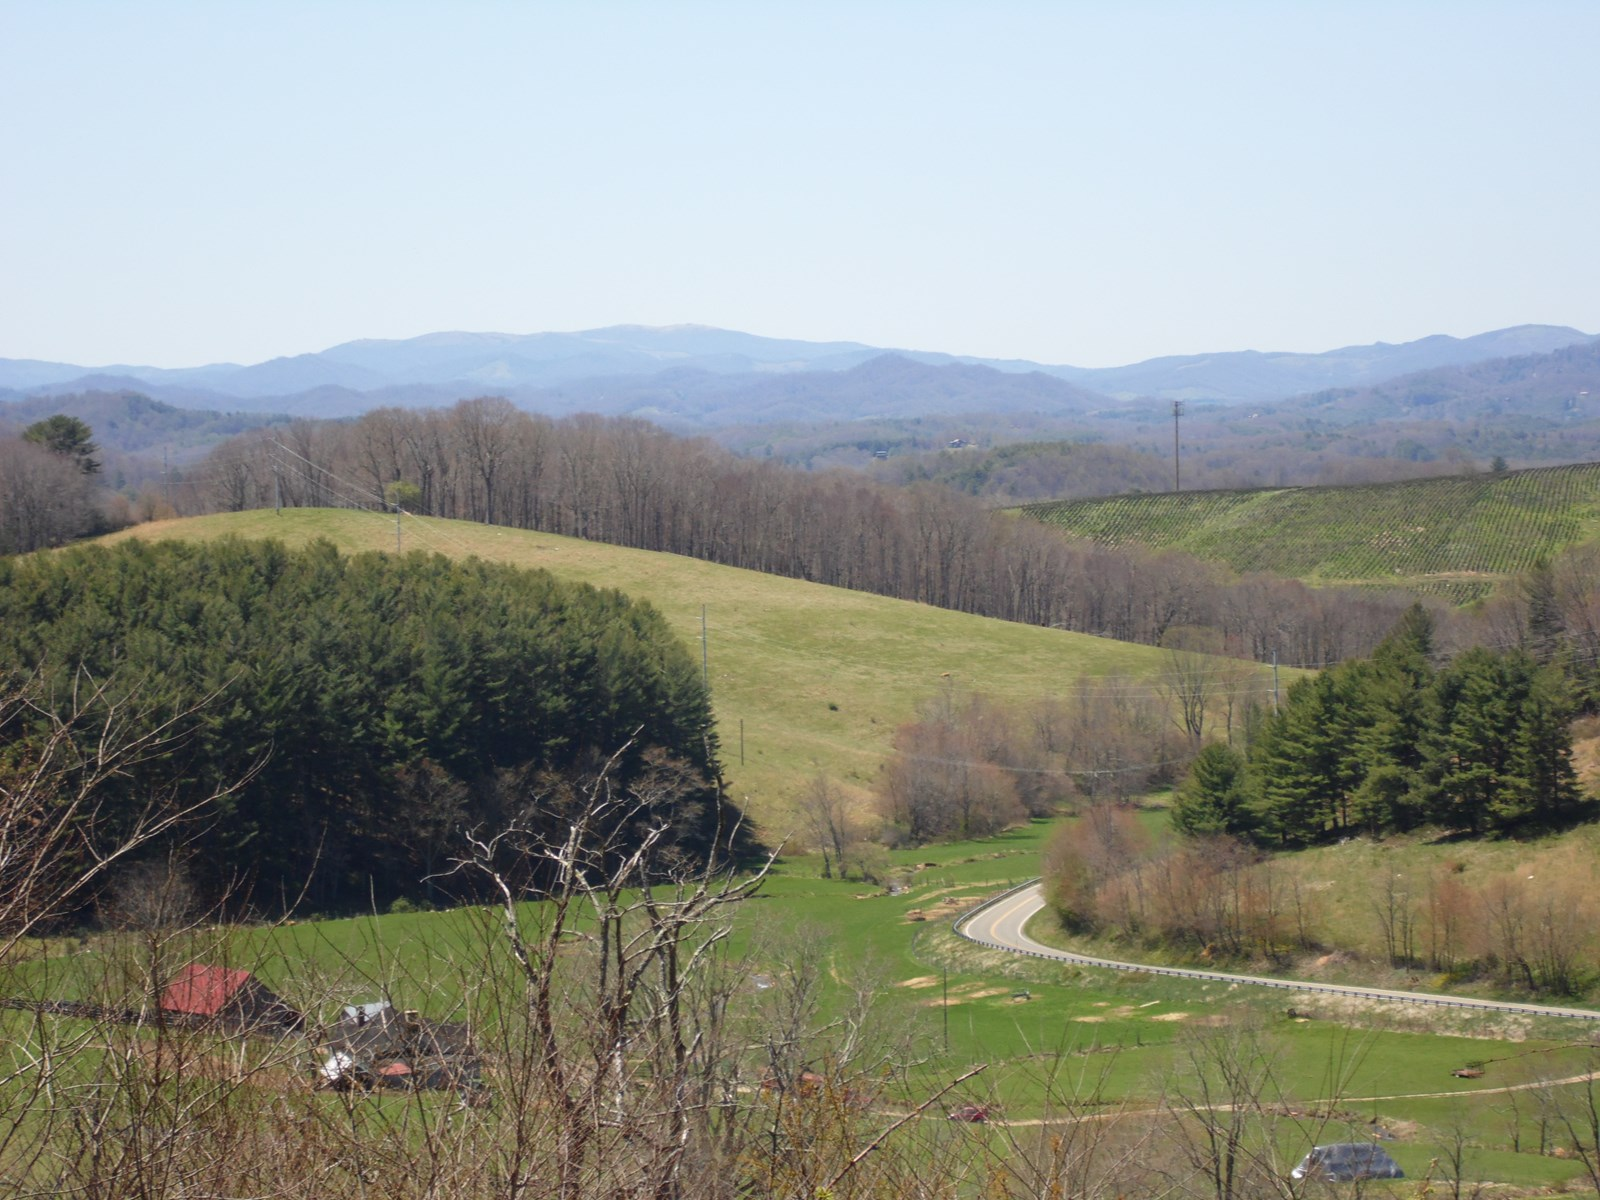 Building Lot for Sale in Laurel Springs NC Alleghany CO